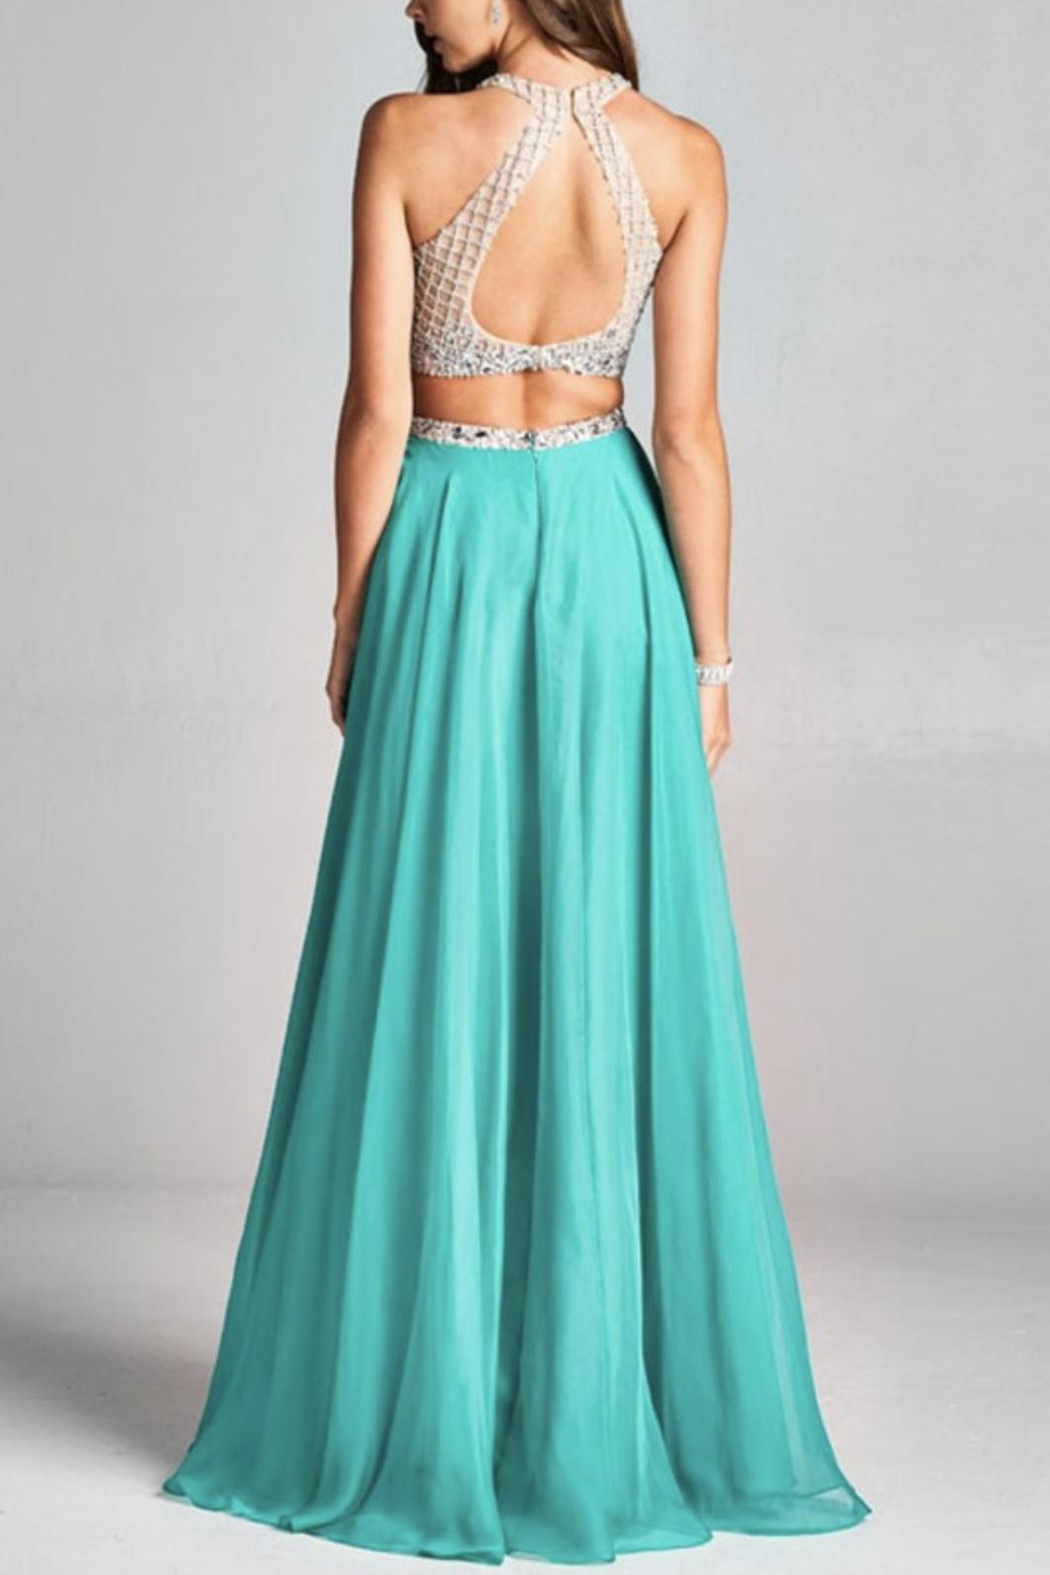 ASPEED DESIGN Two-Piece Prom Dress from Florida by Apricot Lane St ...